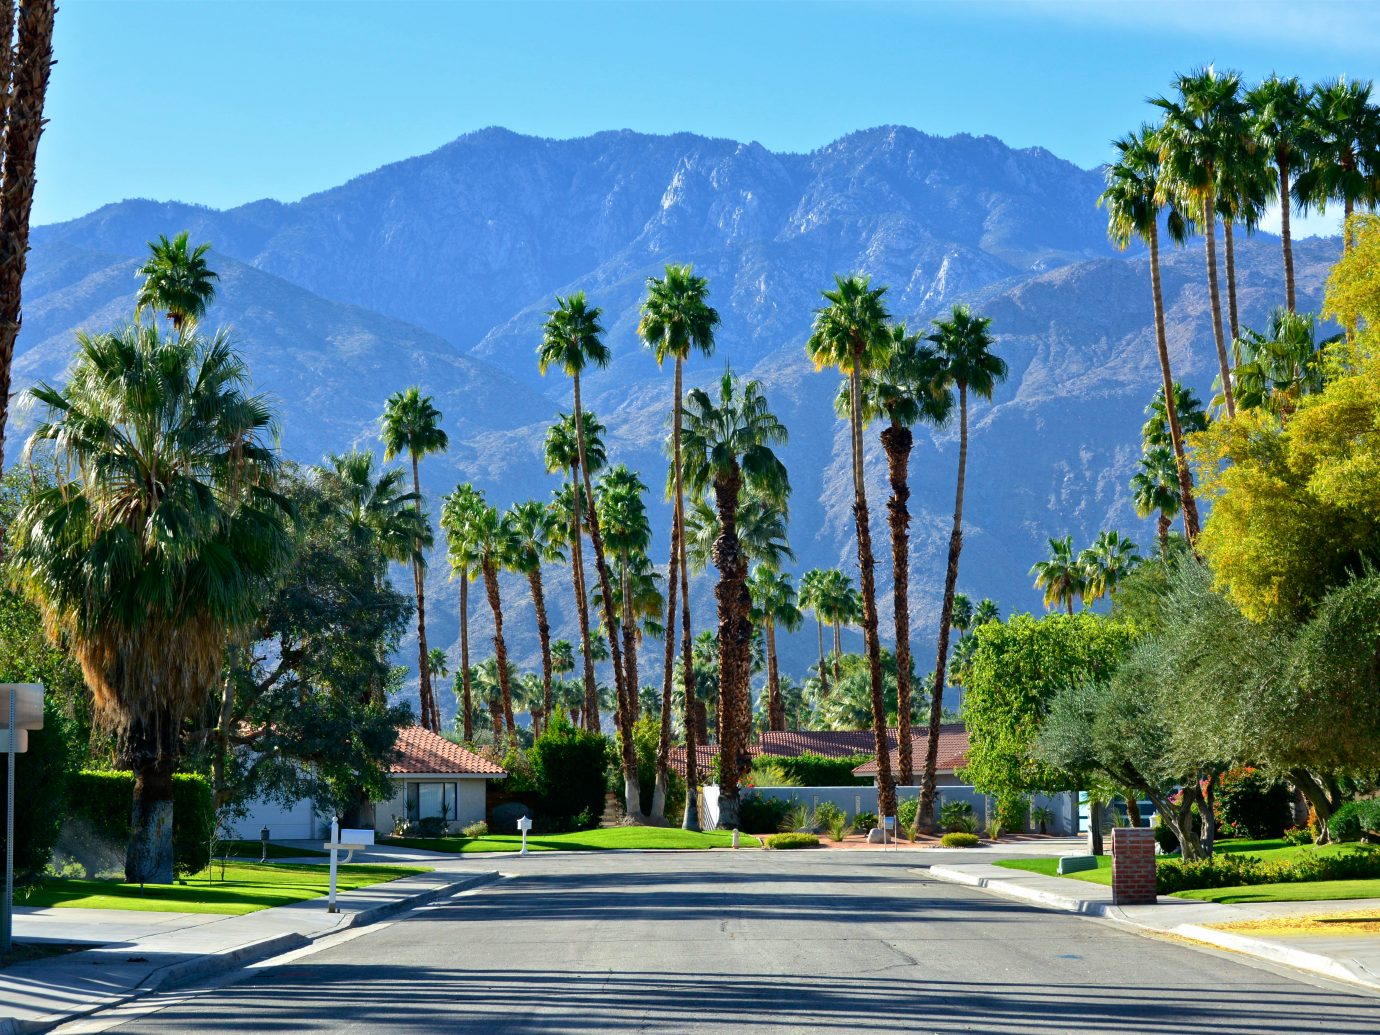 A street scene in Palm Springs, Southern California